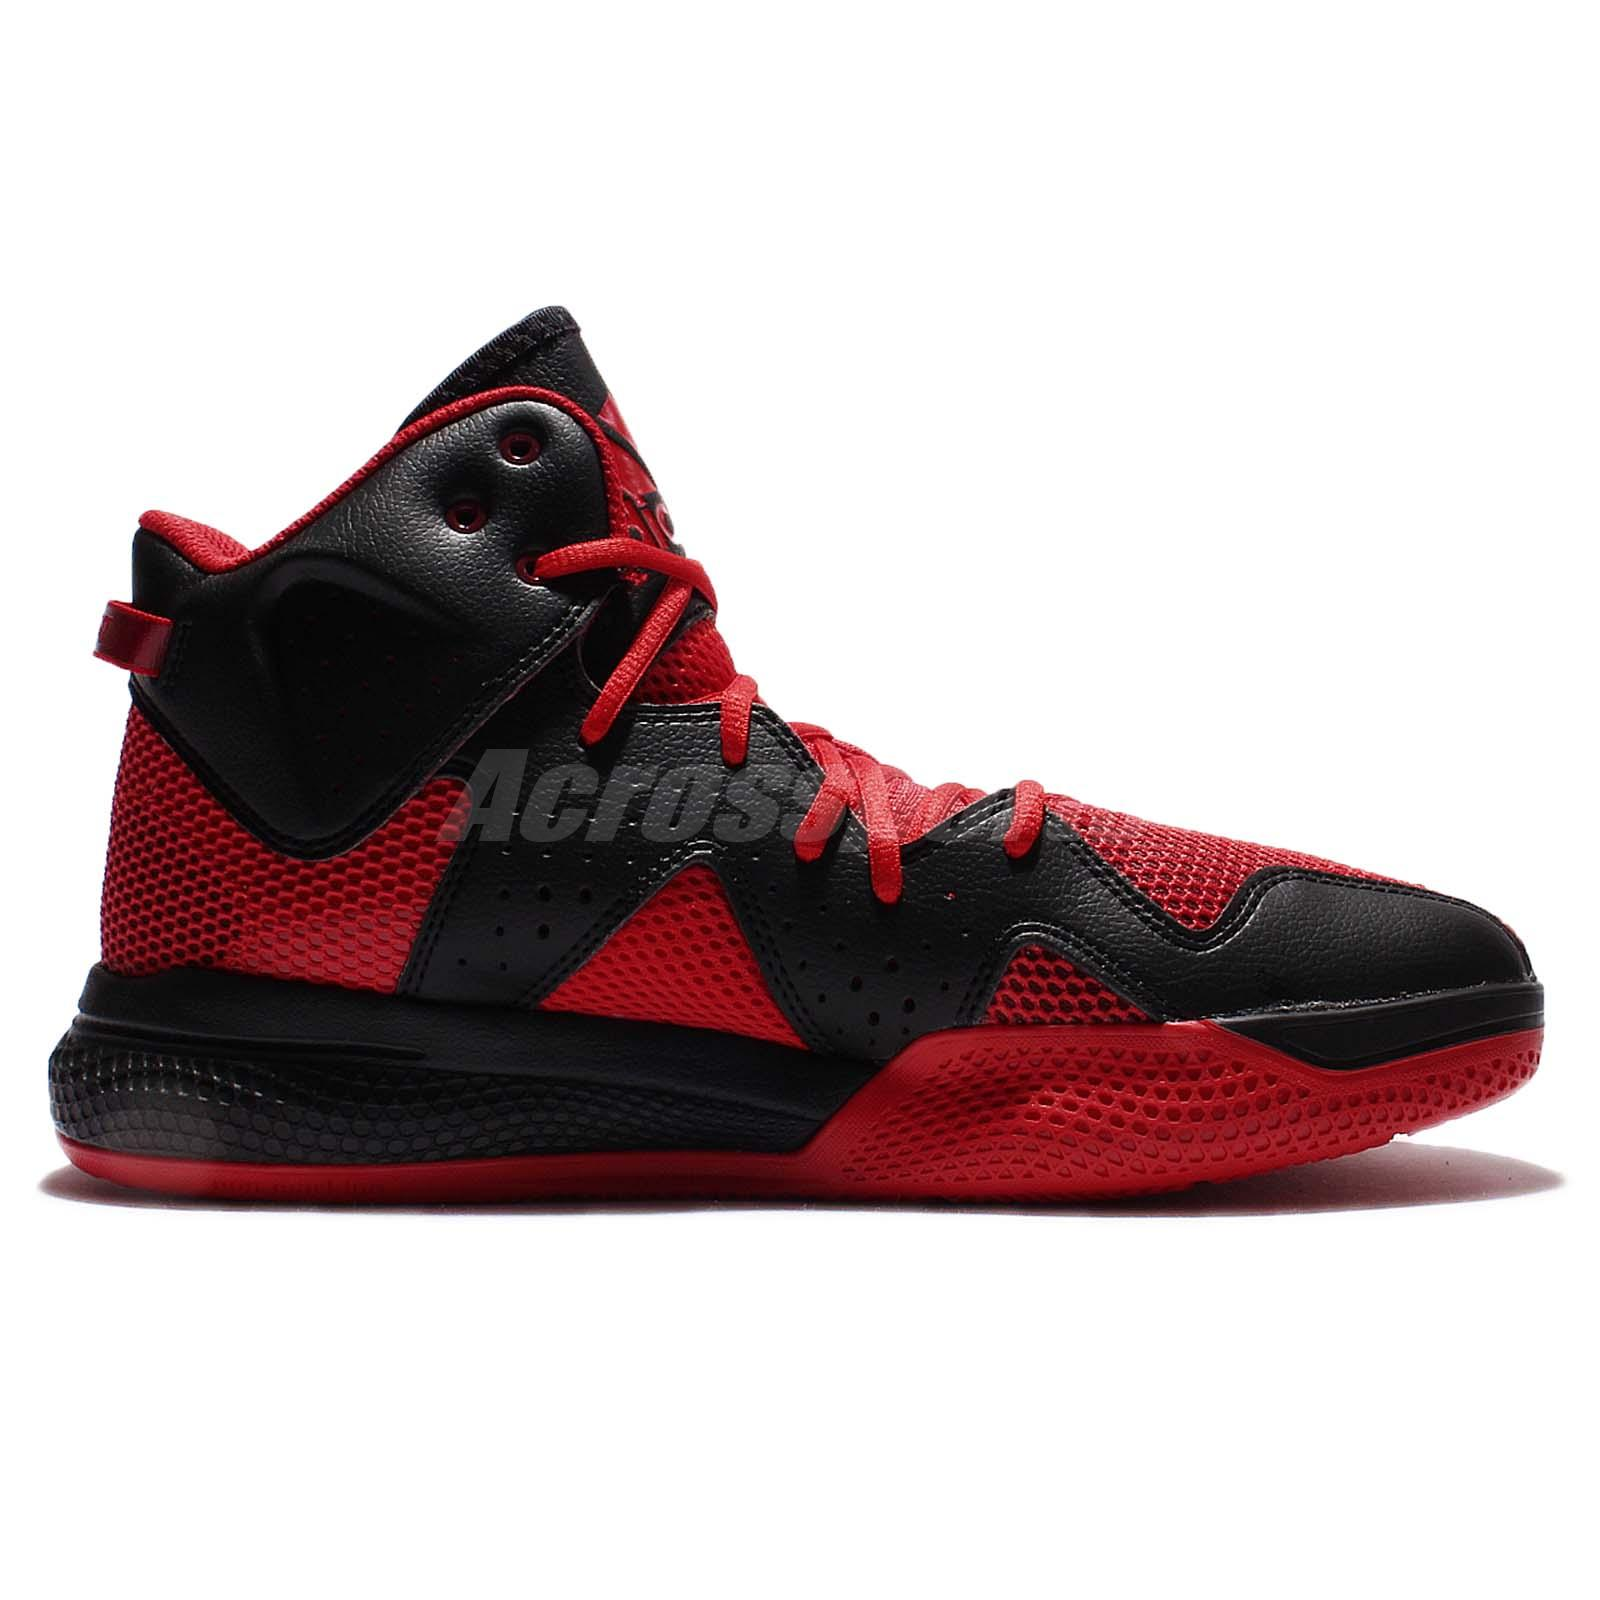 5e458057eee9a7 ... where to buy red and black adidas basketball shoes 57933 009ed